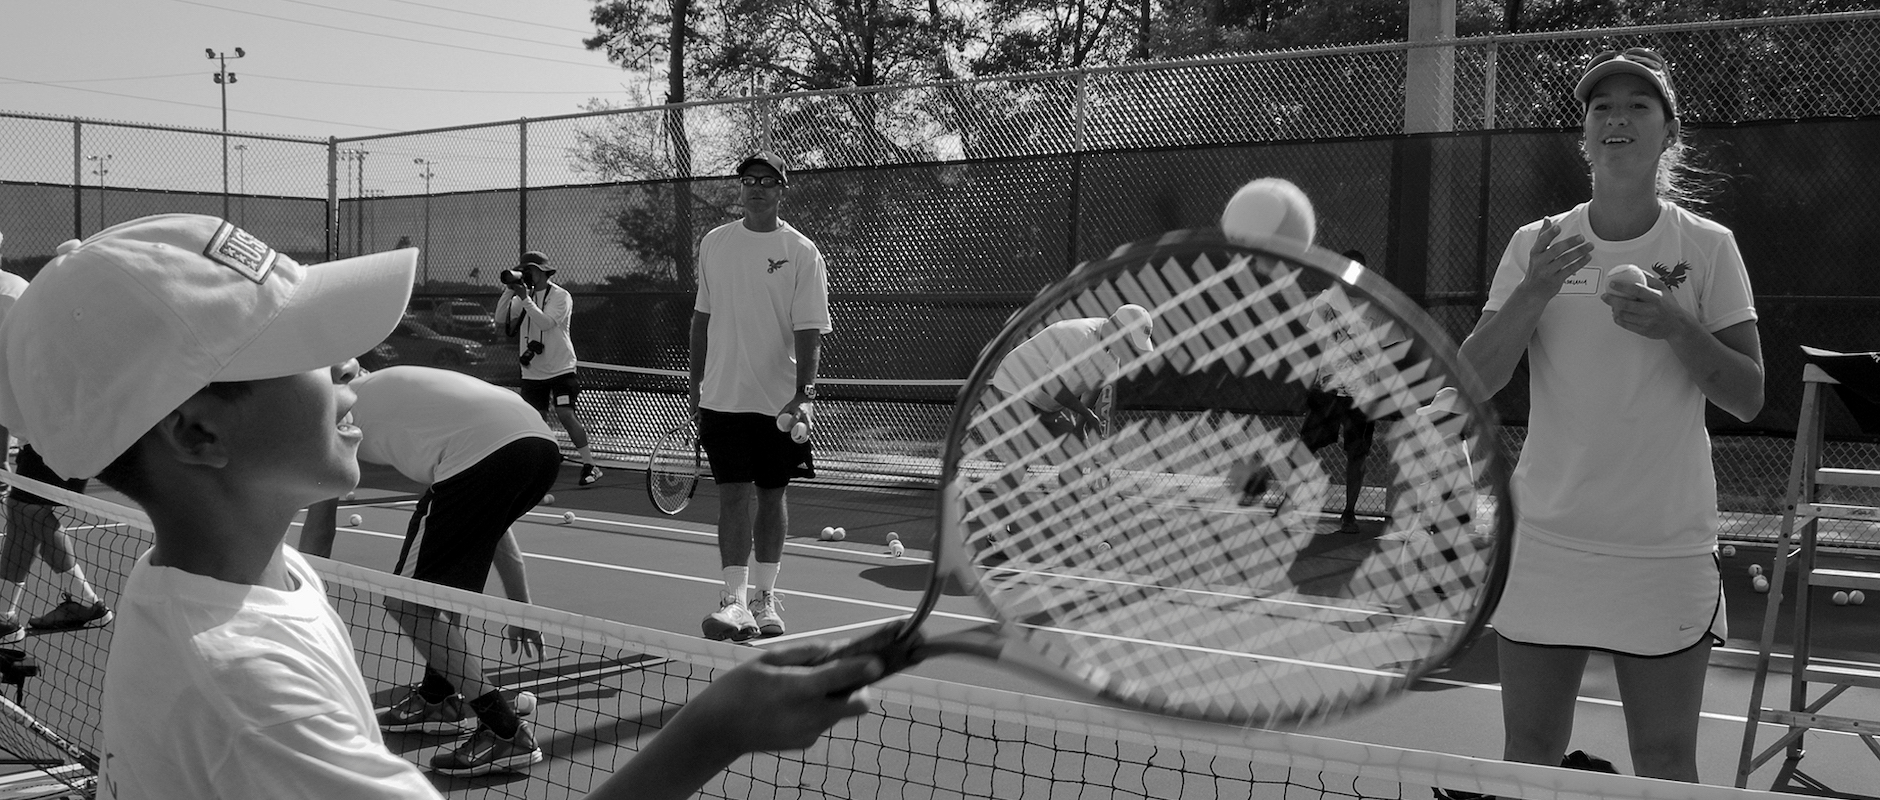 Tennis teaching methodologies